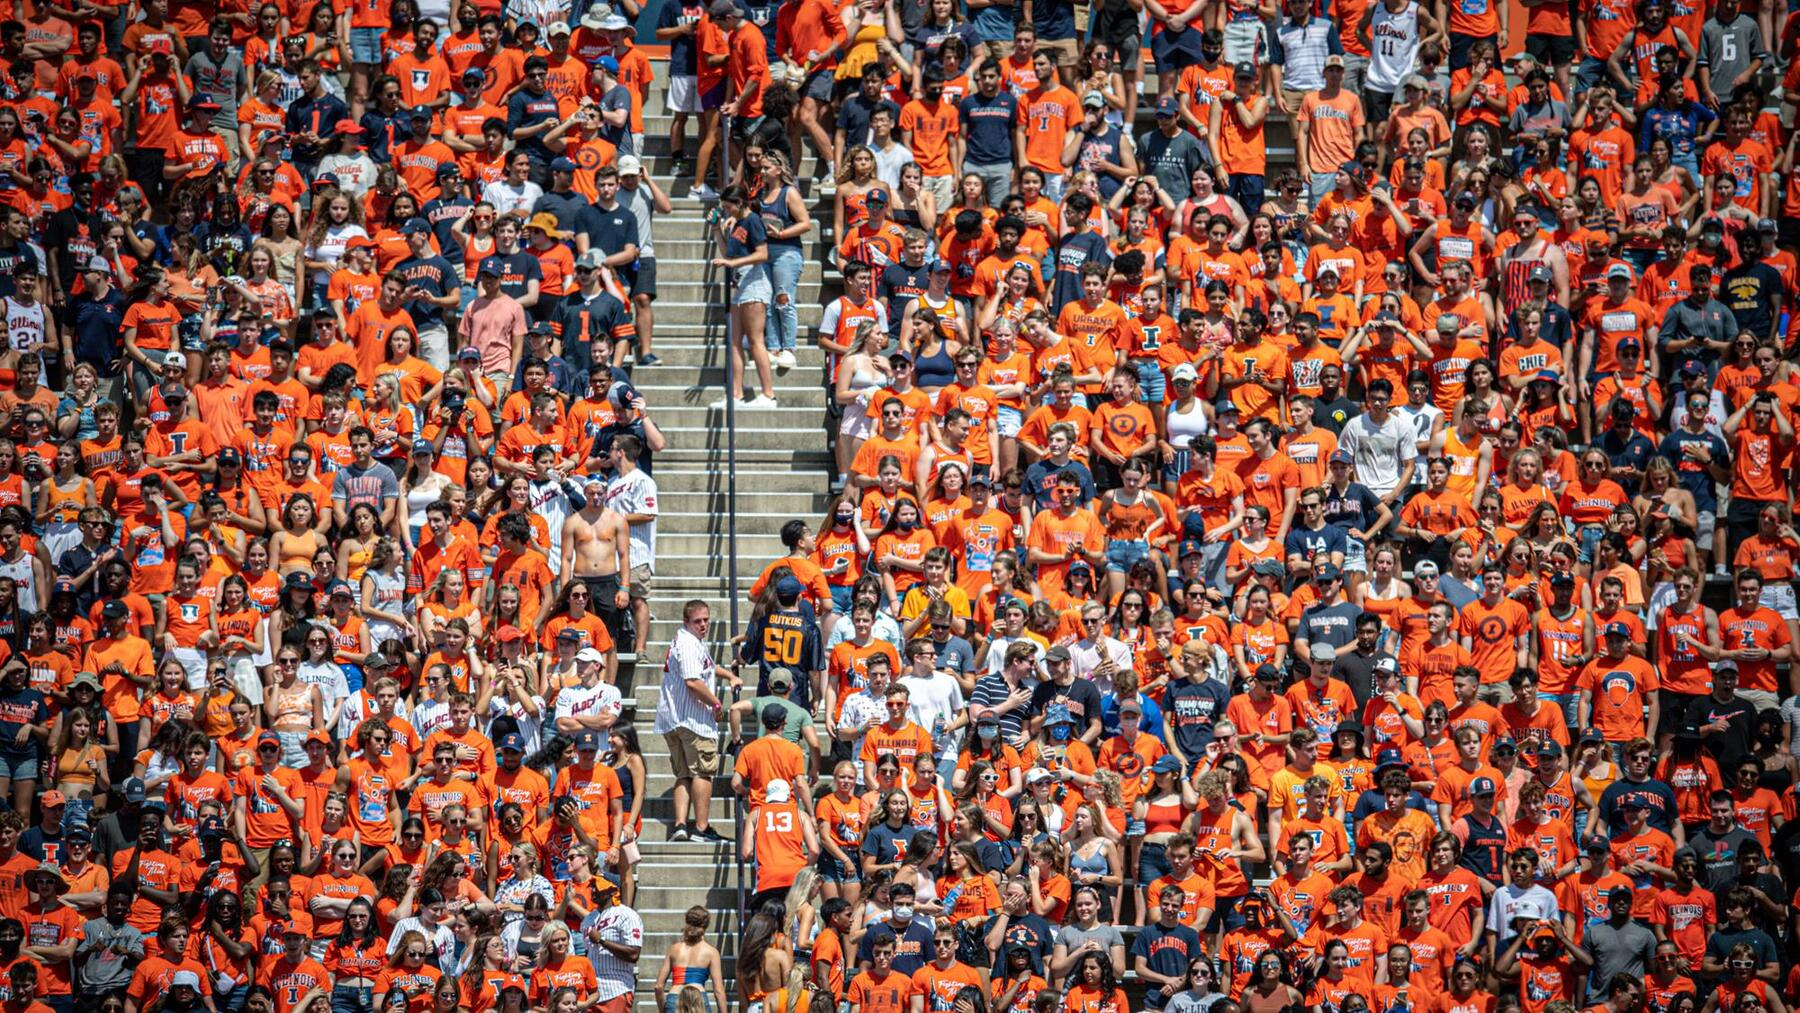 a crowd, nearly all dressed in orange, watch an Illini football game pre-COVID